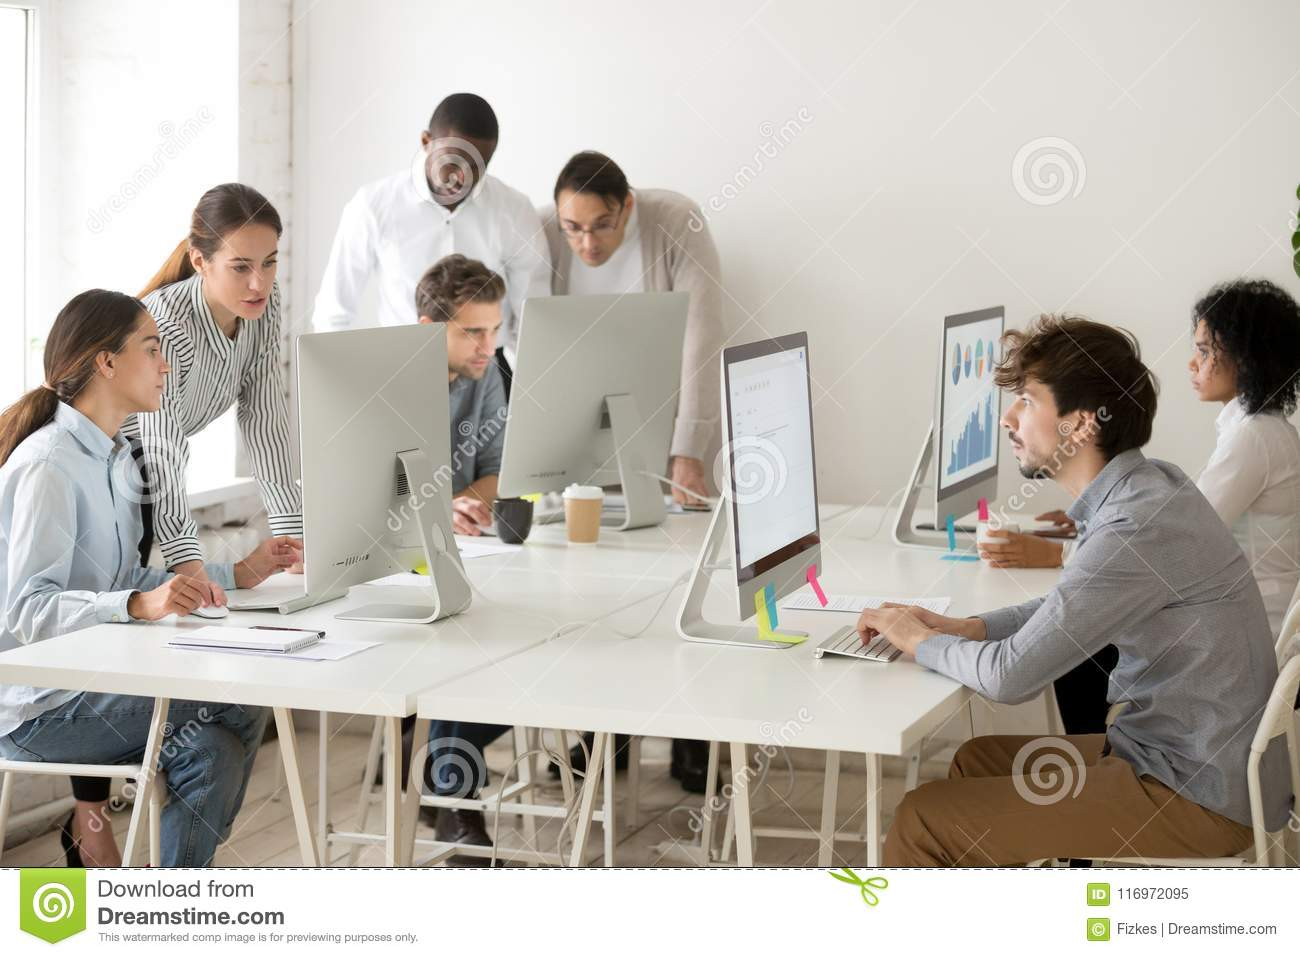 Focused multiracial business people working online on computers